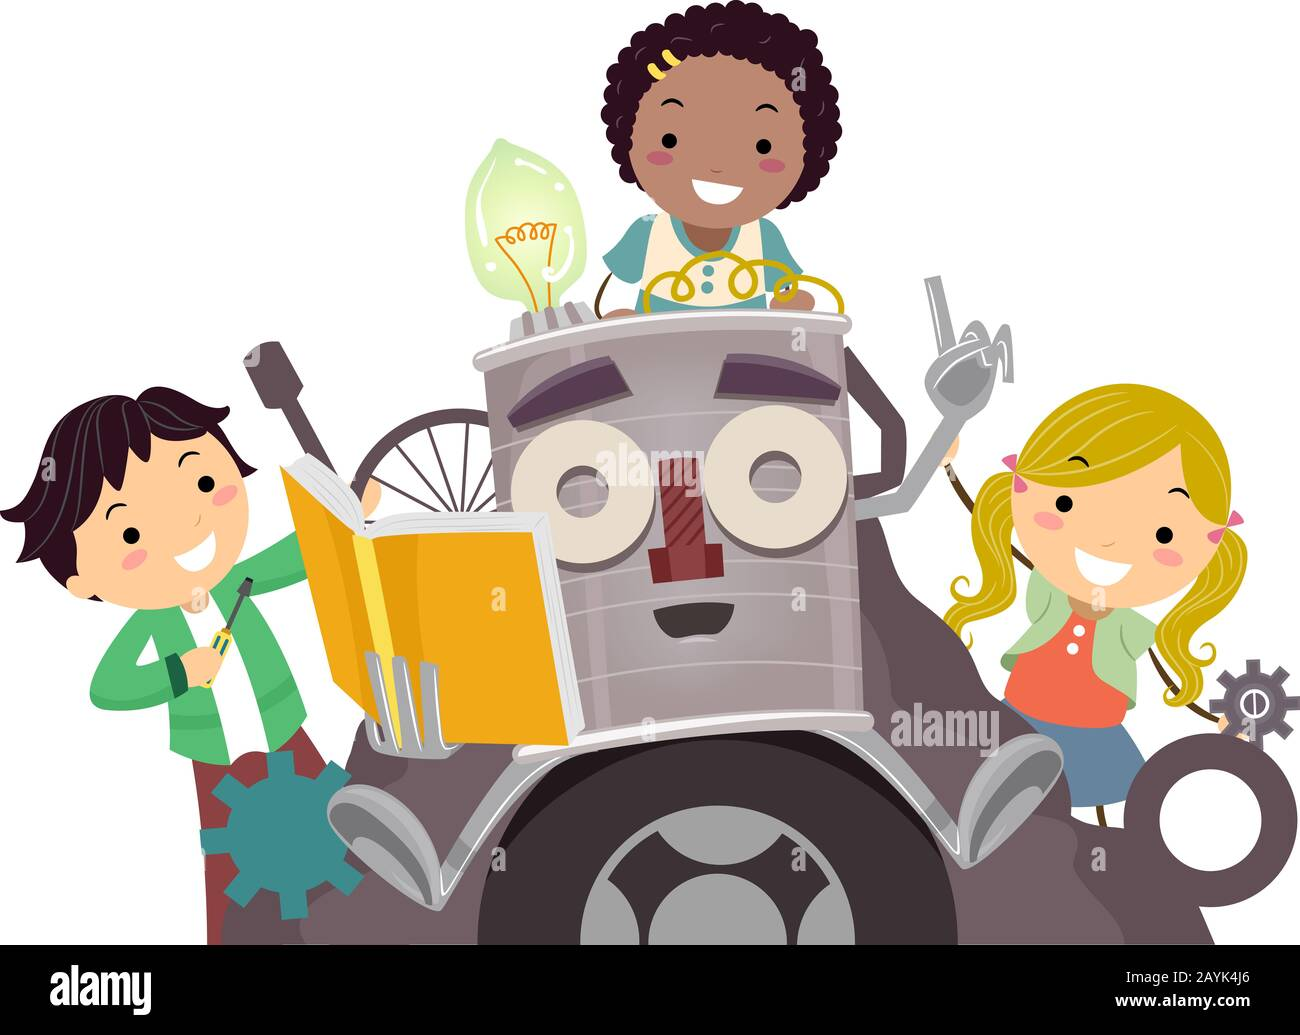 Illustration of Stickman Kids Riding a Junk Art Robot Holding a Book and Talking Stock Photo